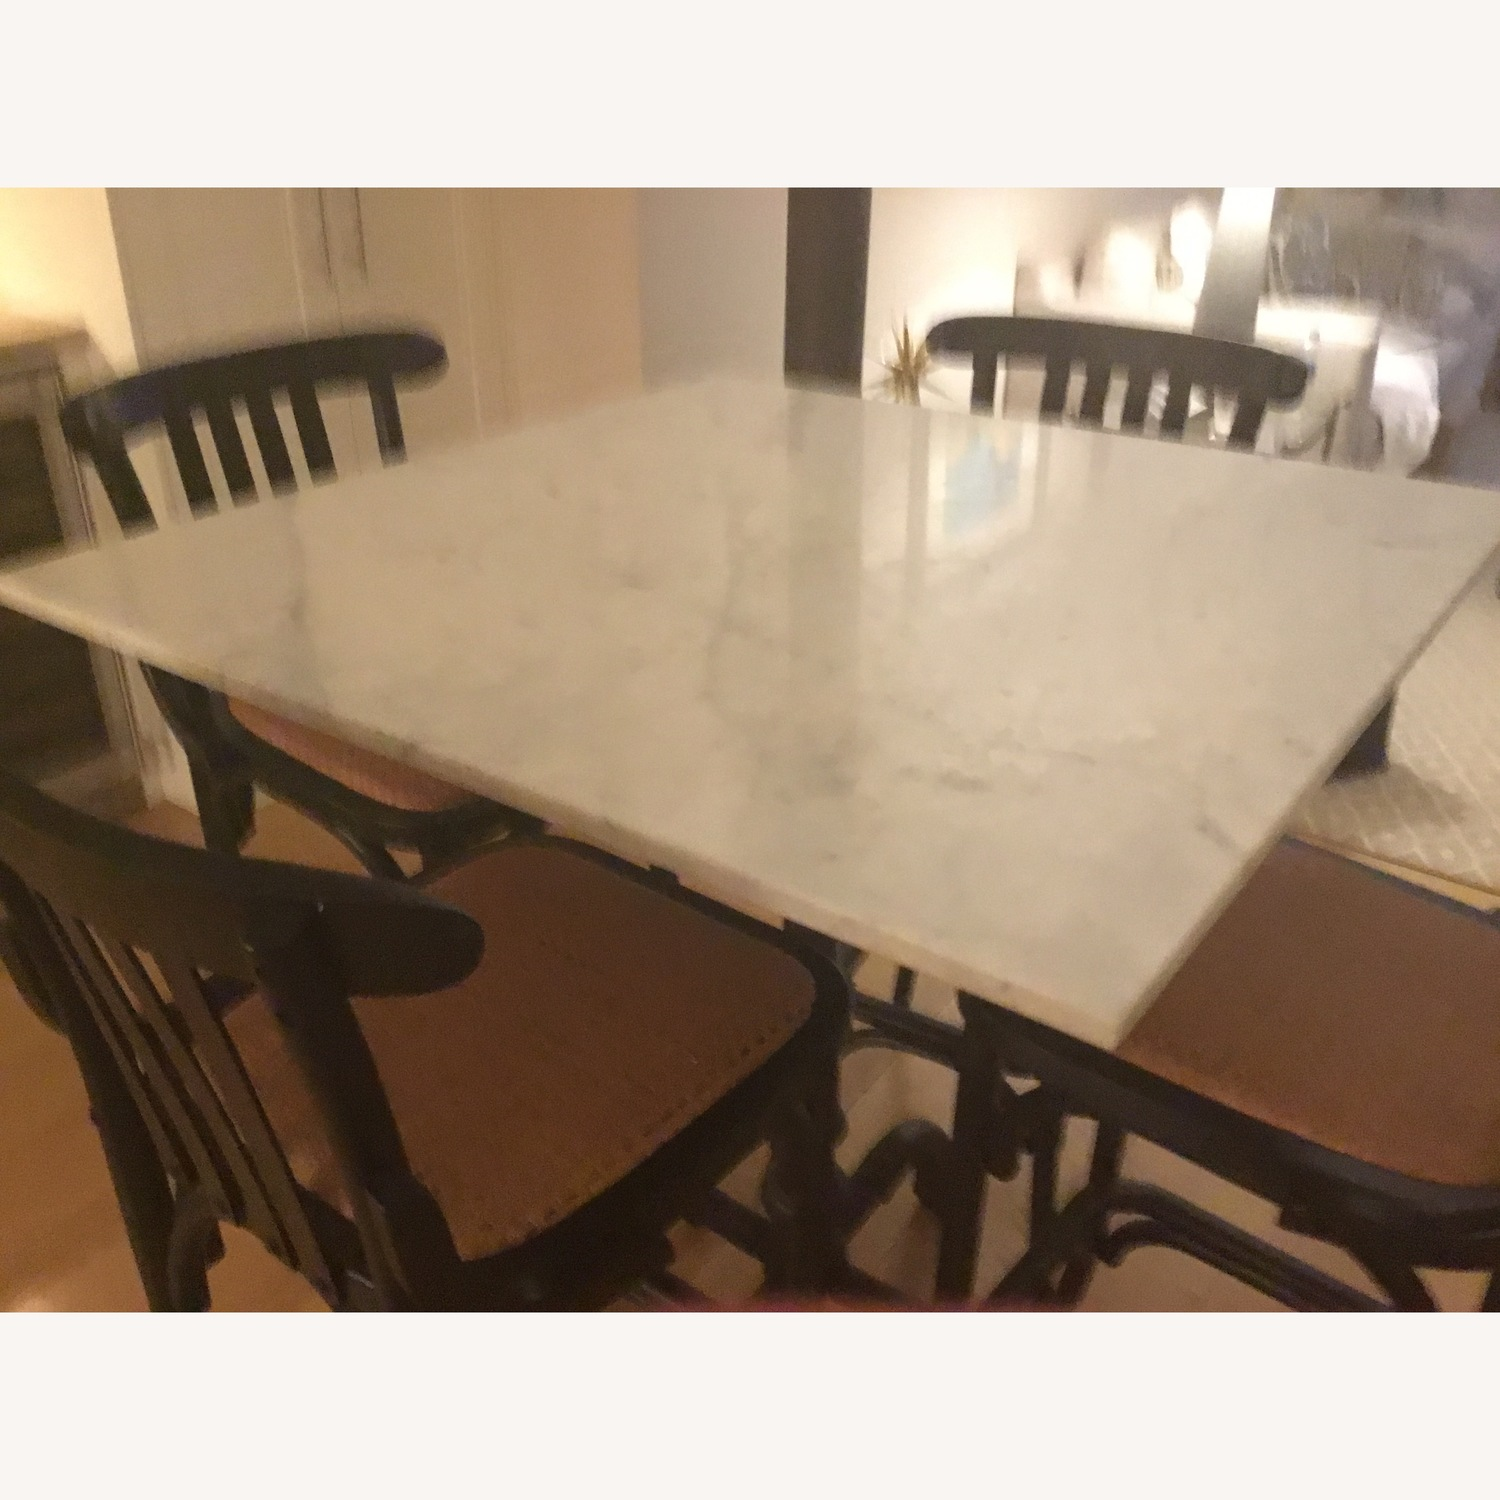 Marble topped table with four matching bar stools